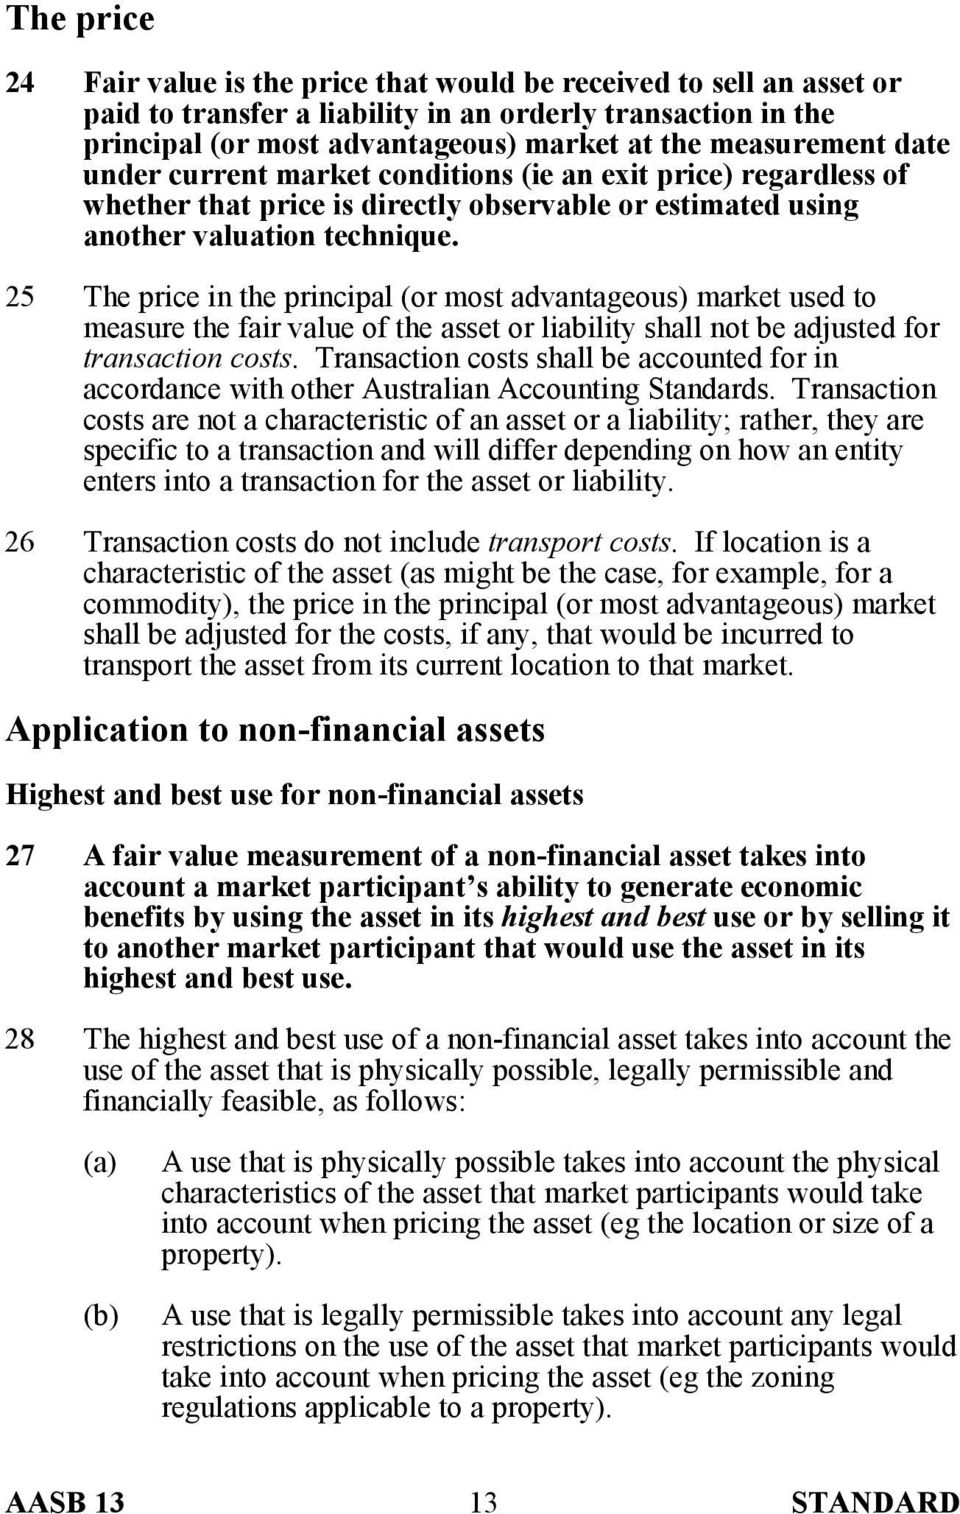 25 The price in the principal (or most advantageous) market used to measure the fair value of the asset or liability shall not be adjusted for transaction costs.